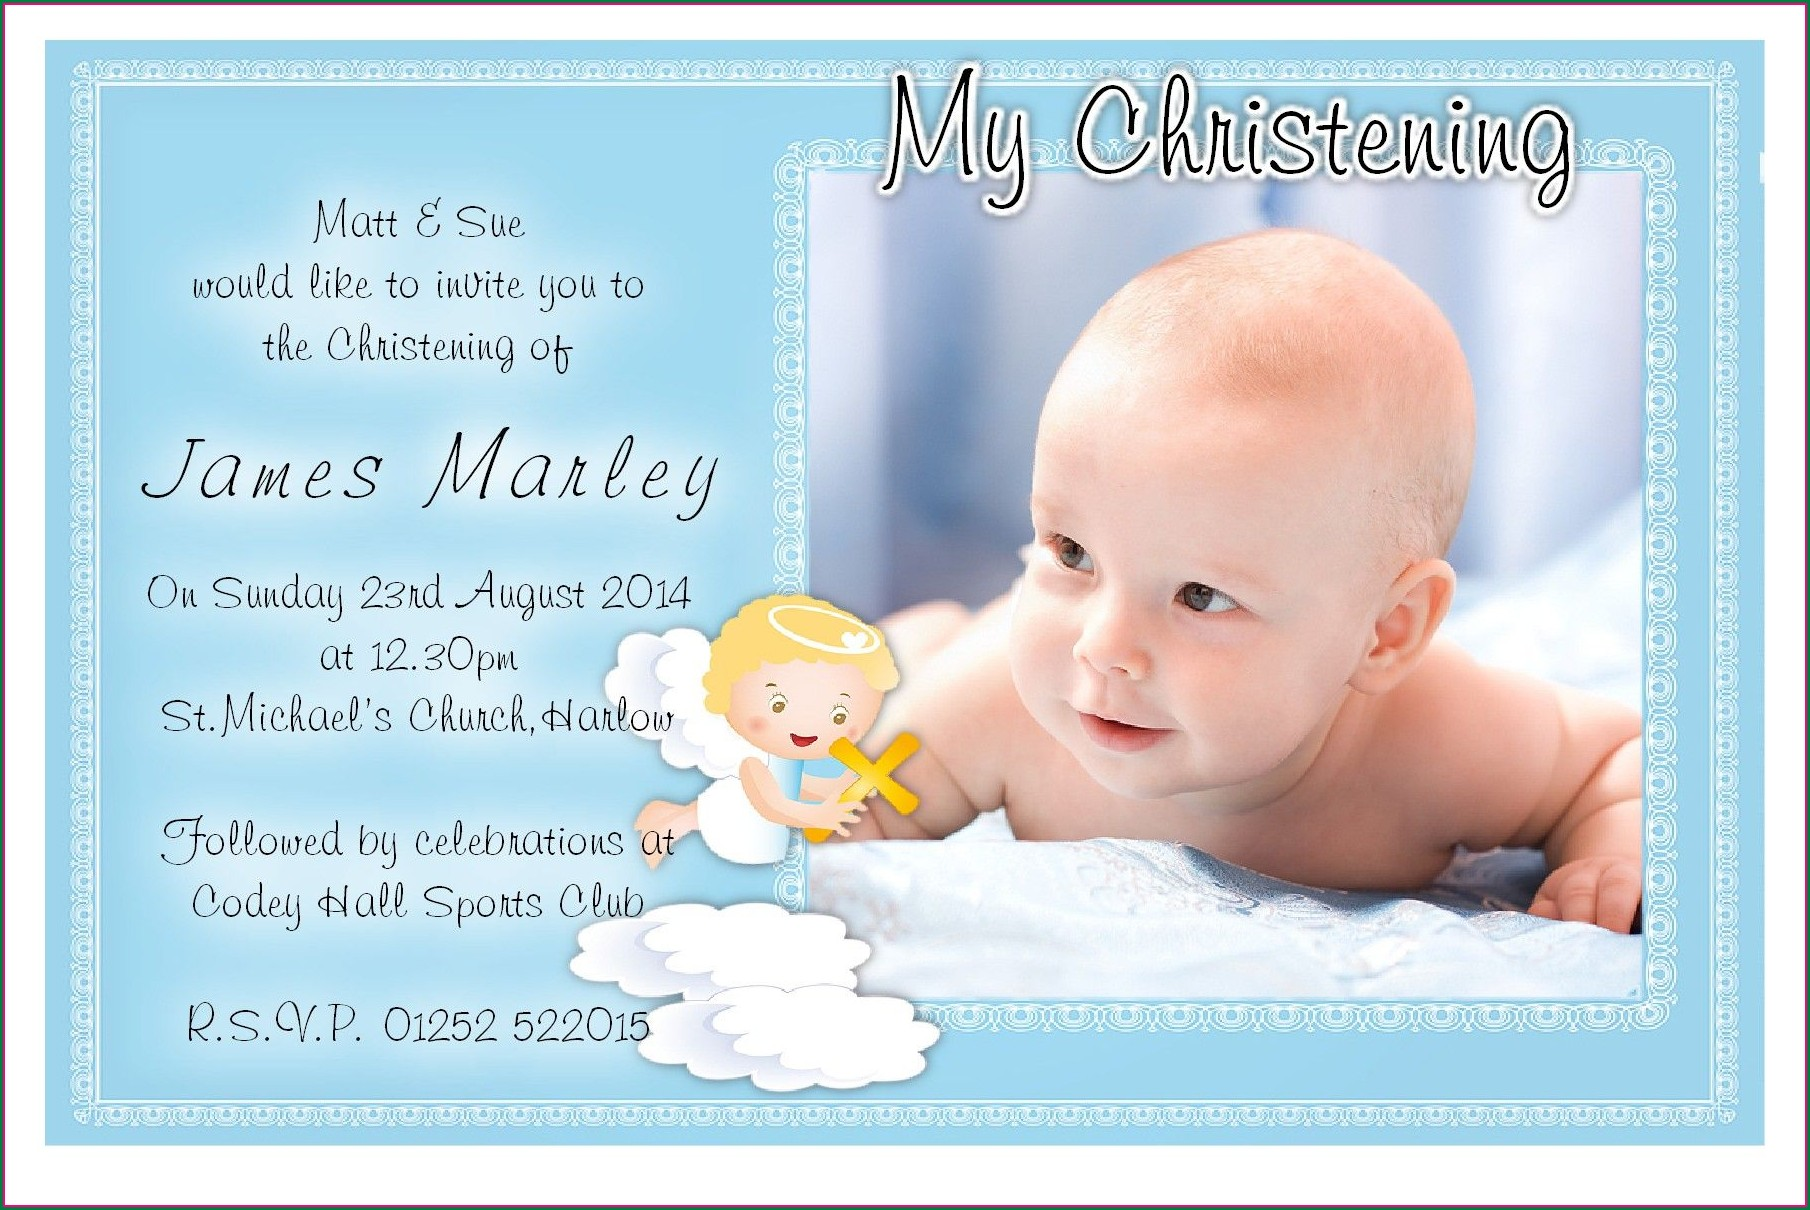 Baptismal Invitation For Baby Boy Philippines